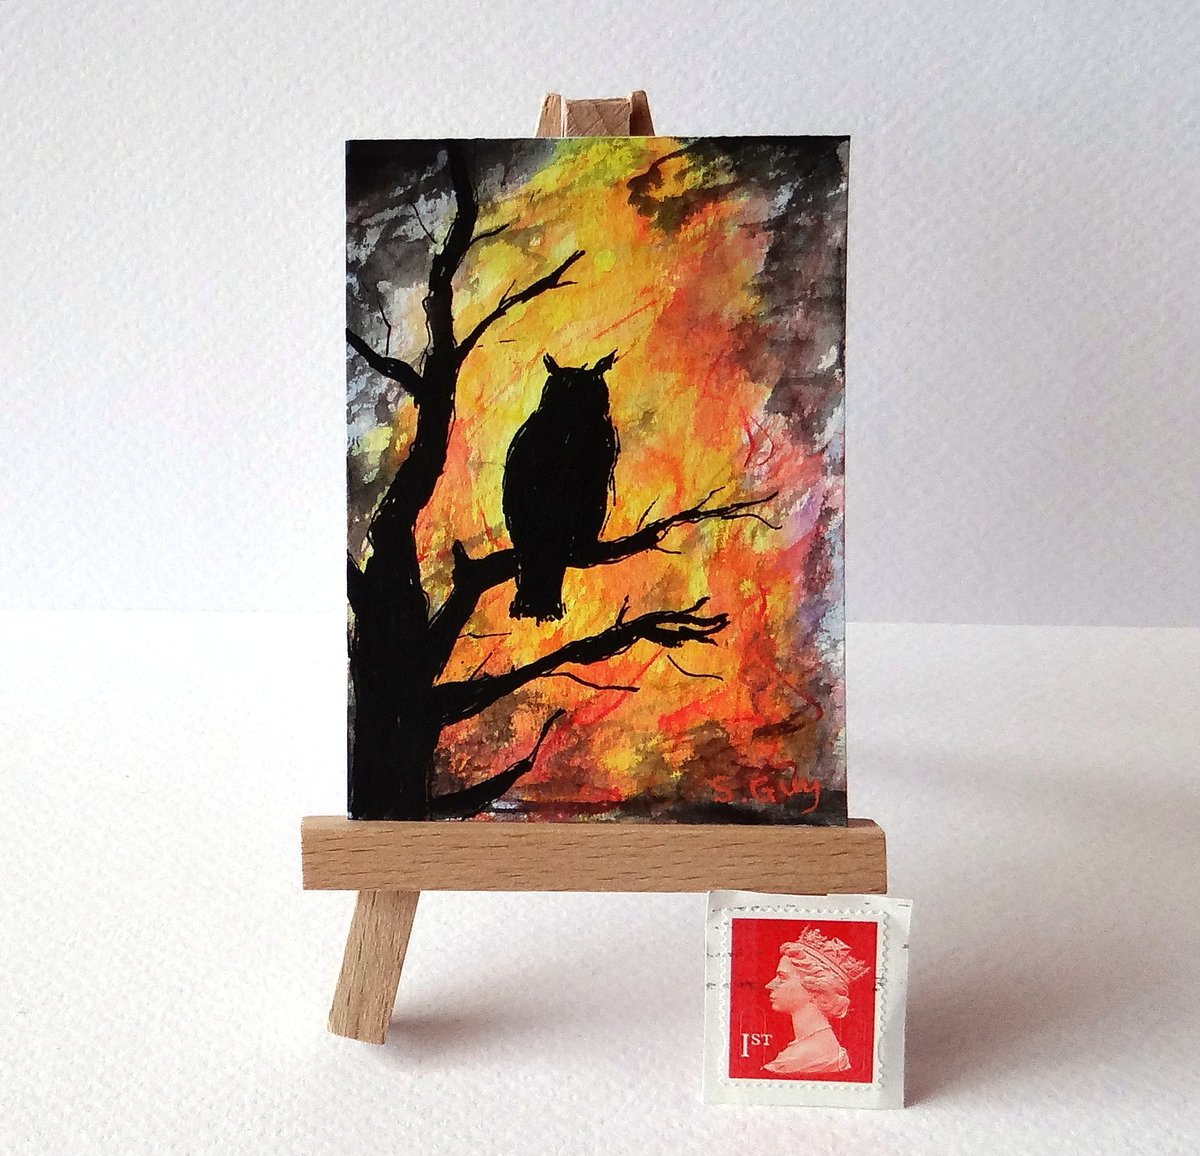 @folksy me! here's one of this year's offerings #folksyhour #halloween https://t.co/0dWNDWl5tY https://t.co/xolumtH8R2